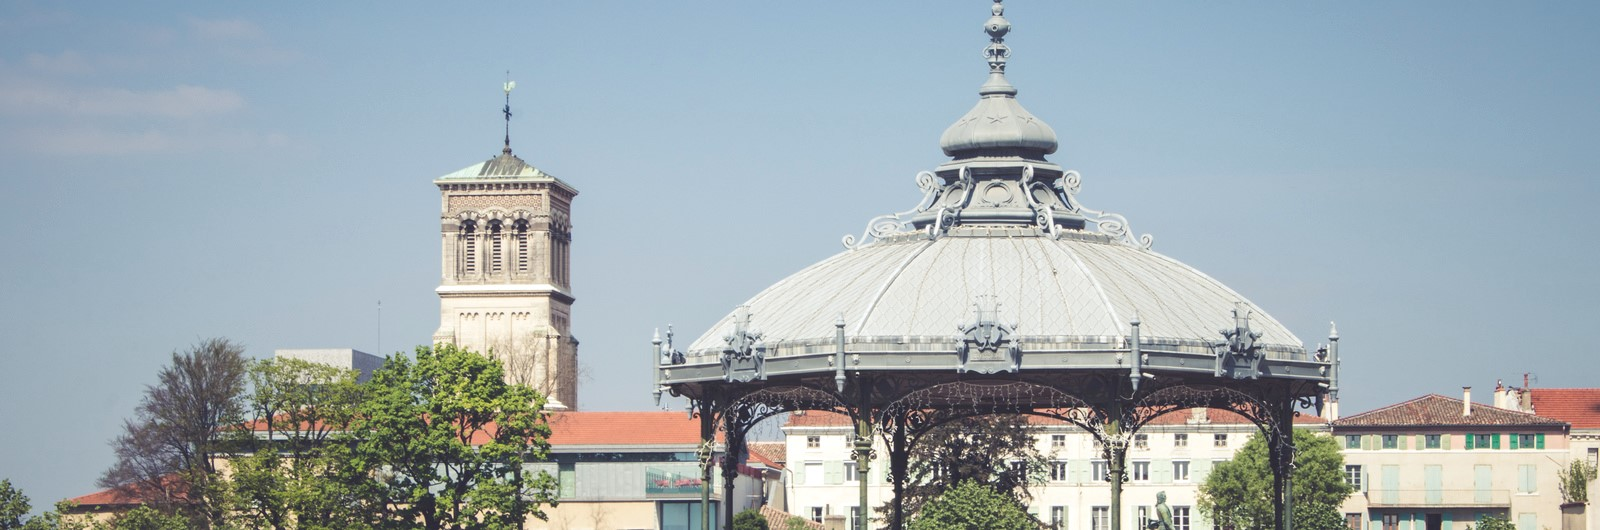 valence city header